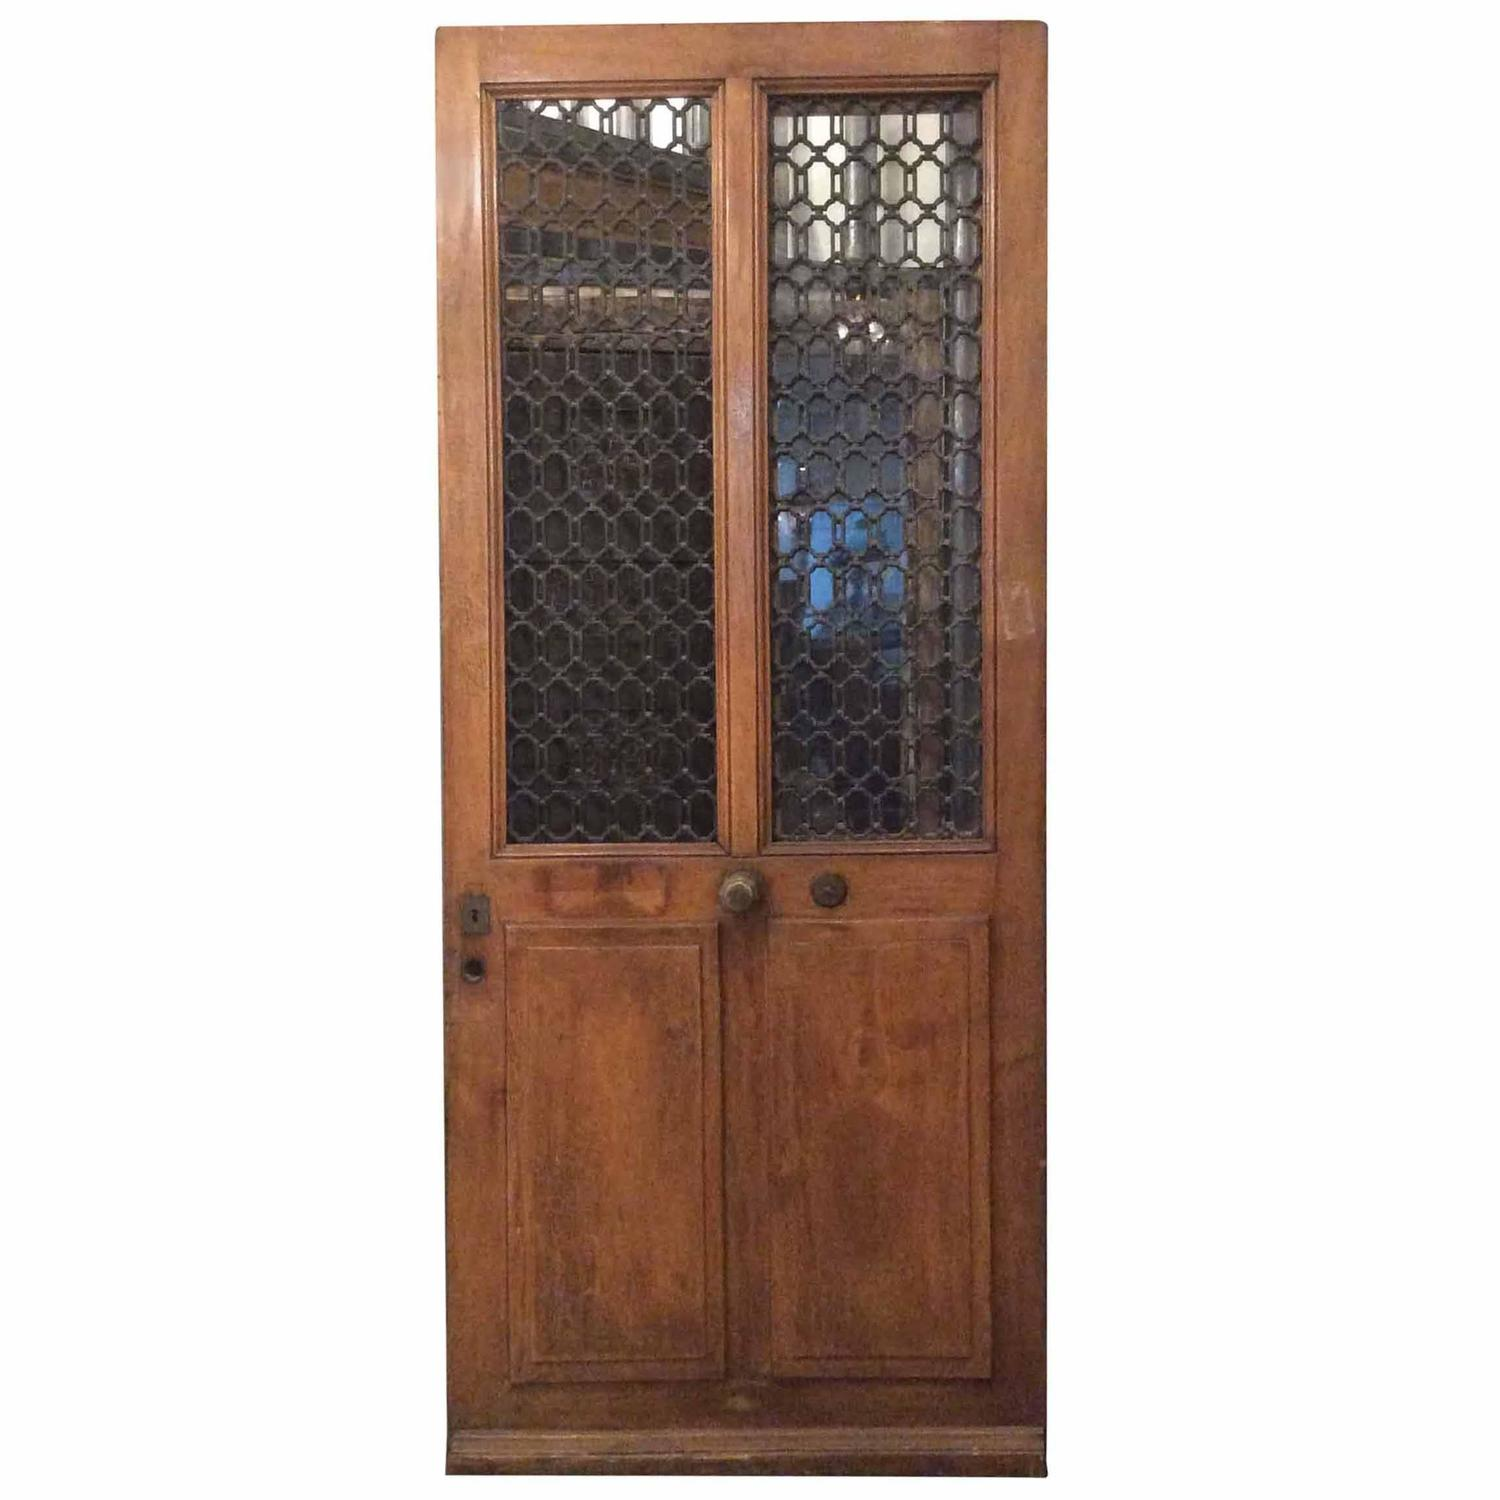 Single antique french door with ironwork for sale at 1stdibs for French doors for sale